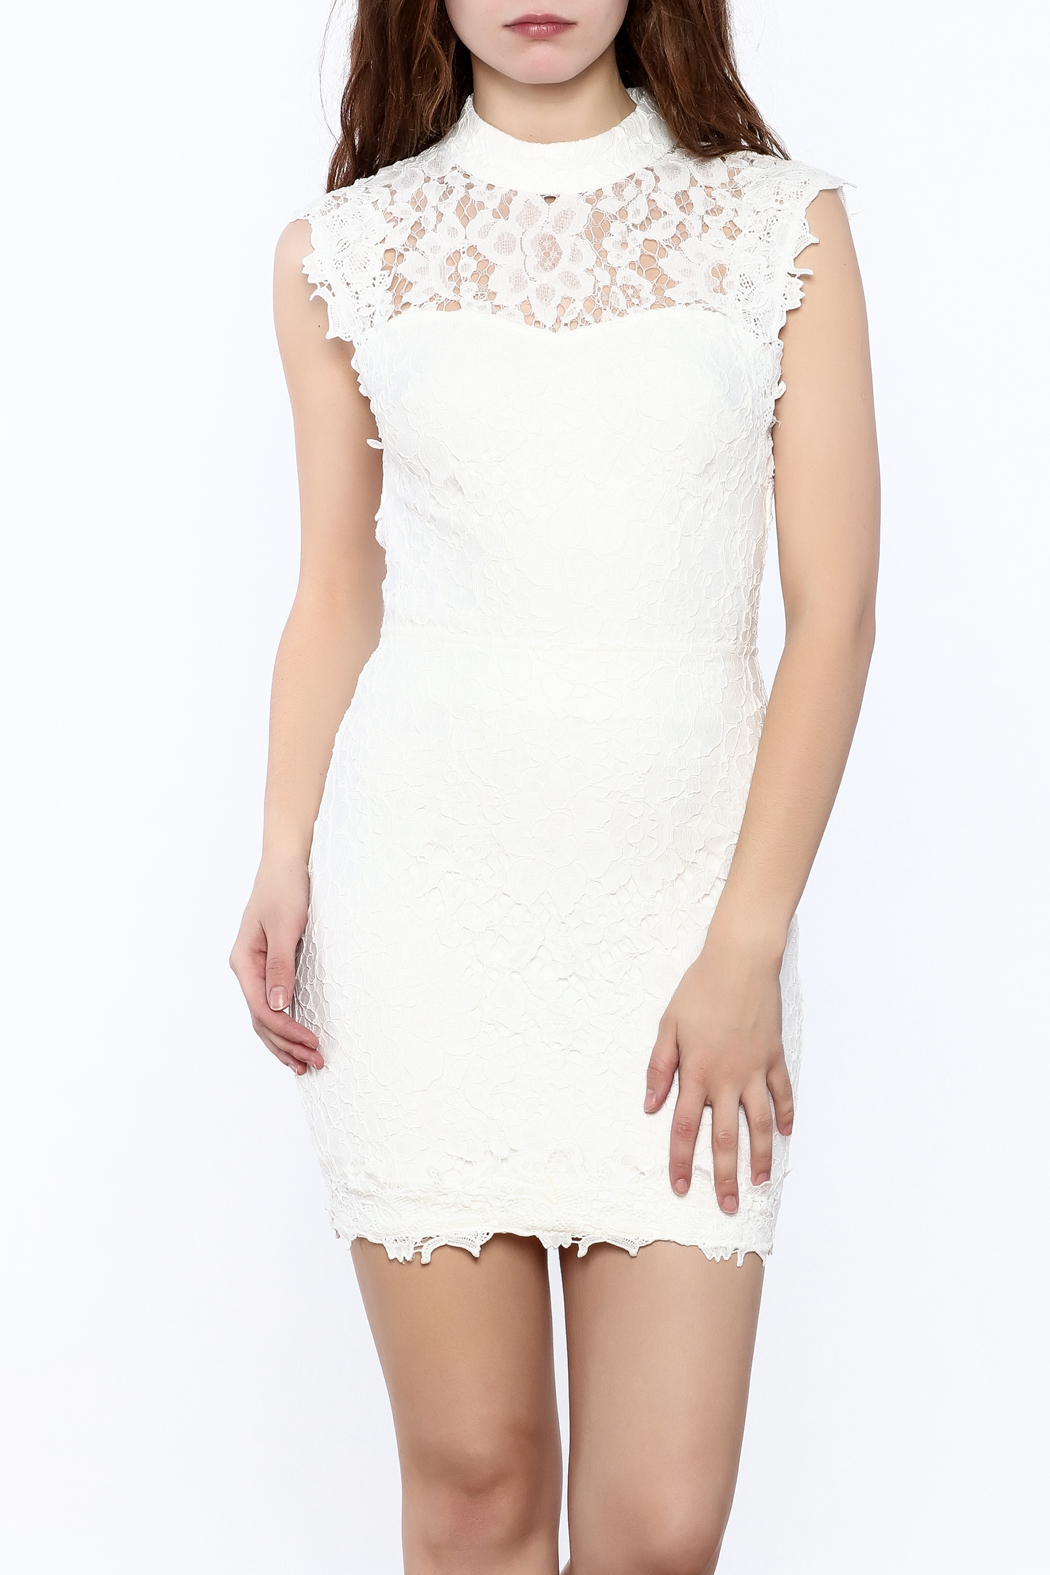 hommage high neck white lace dress from new jersey by mint